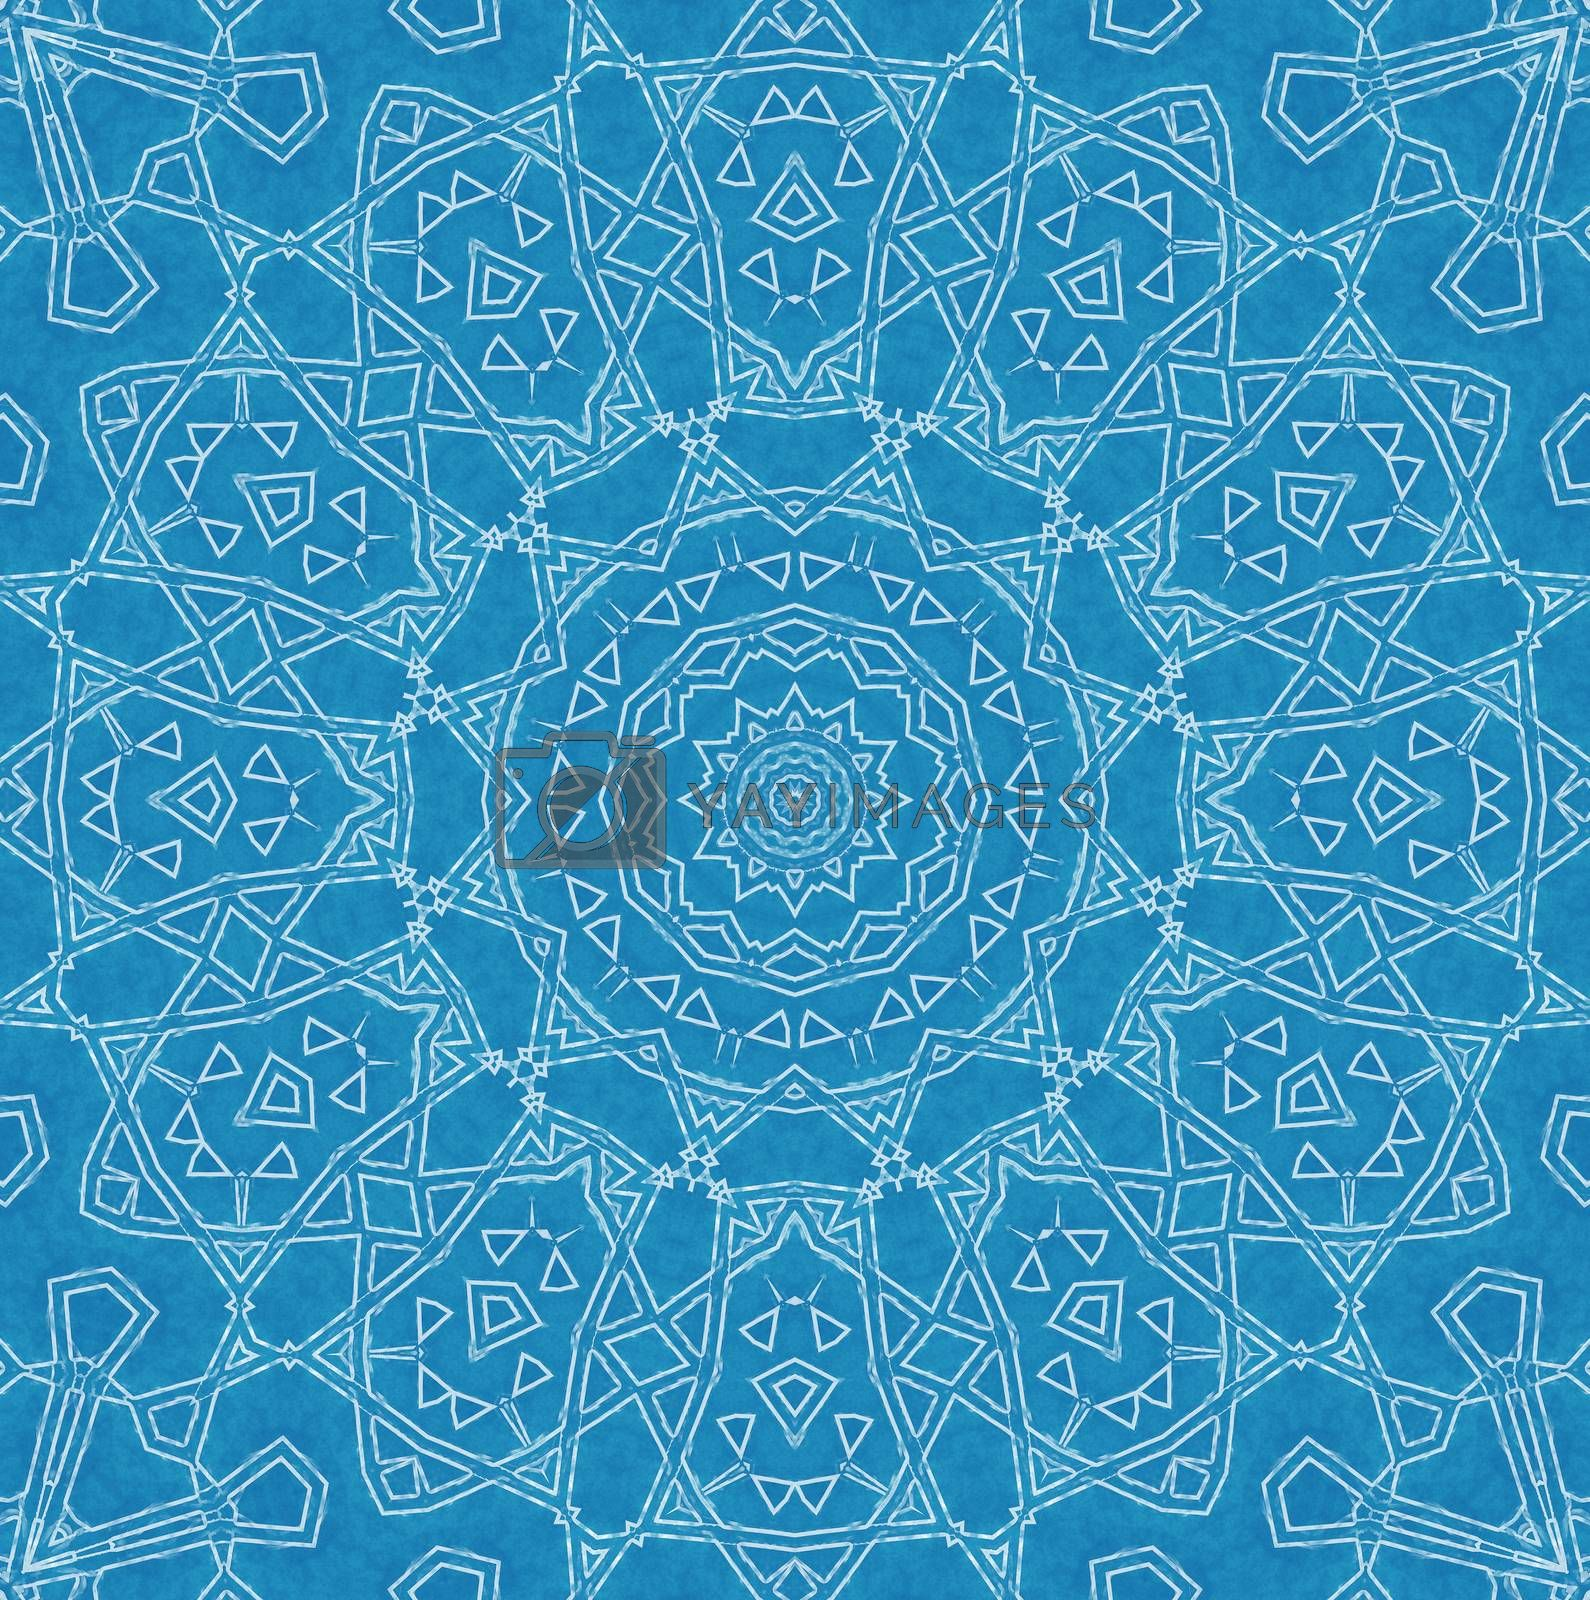 Abstract white pattern on blue background